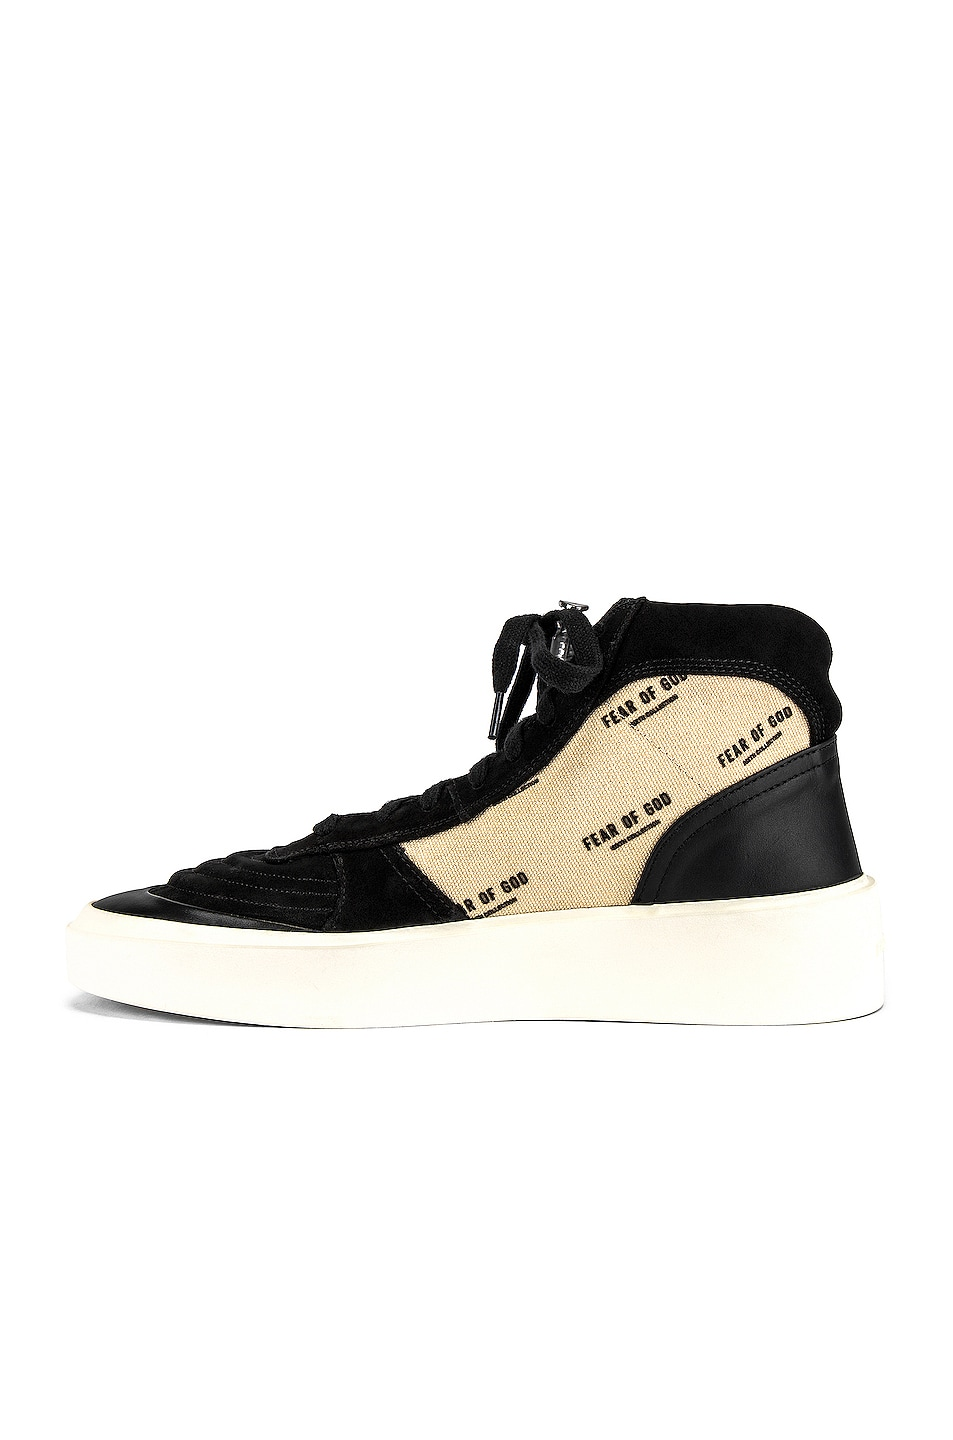 Image 5 of Fear of God Strapless Skate Mid in Black & Creme Print